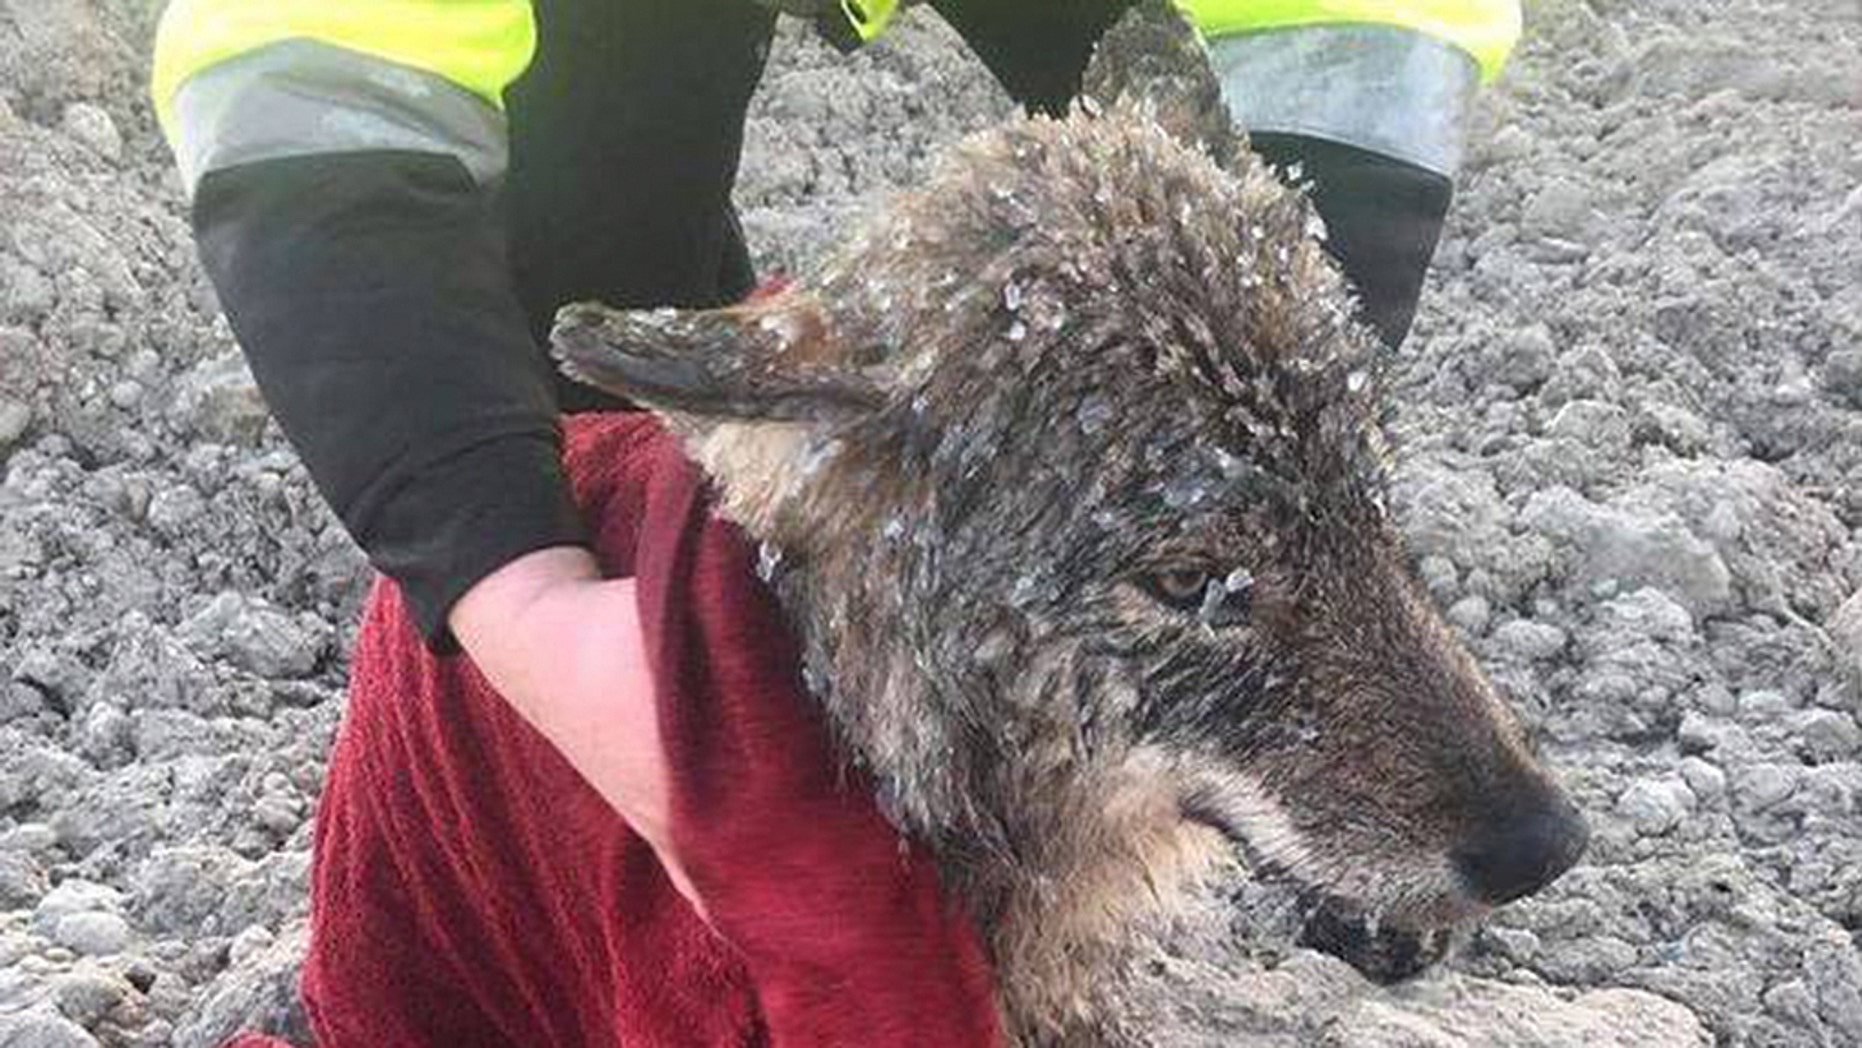 Dam workers in Estonia rescued what they thought was a dog stuck in icy waters on Wednesday, but it turned out to be a very friendly wolf